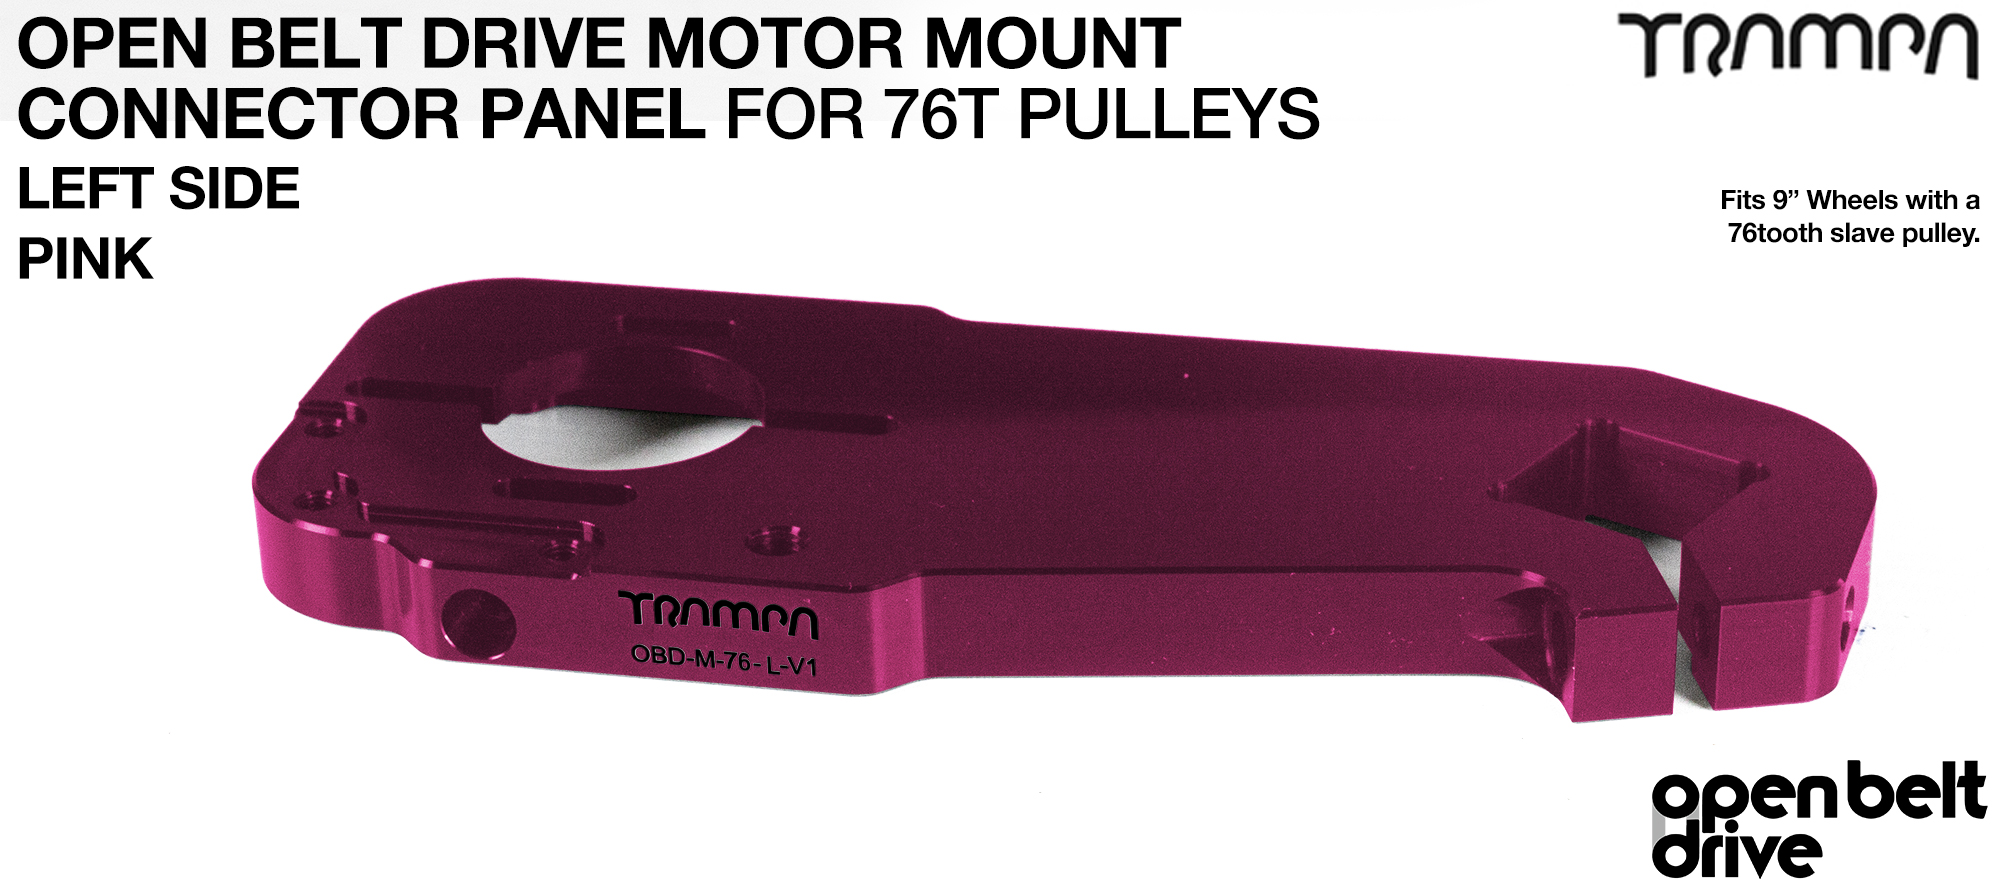 OBD Motor Mount Connector Panel for 76 tooth pulleys - REGULAR - PINK